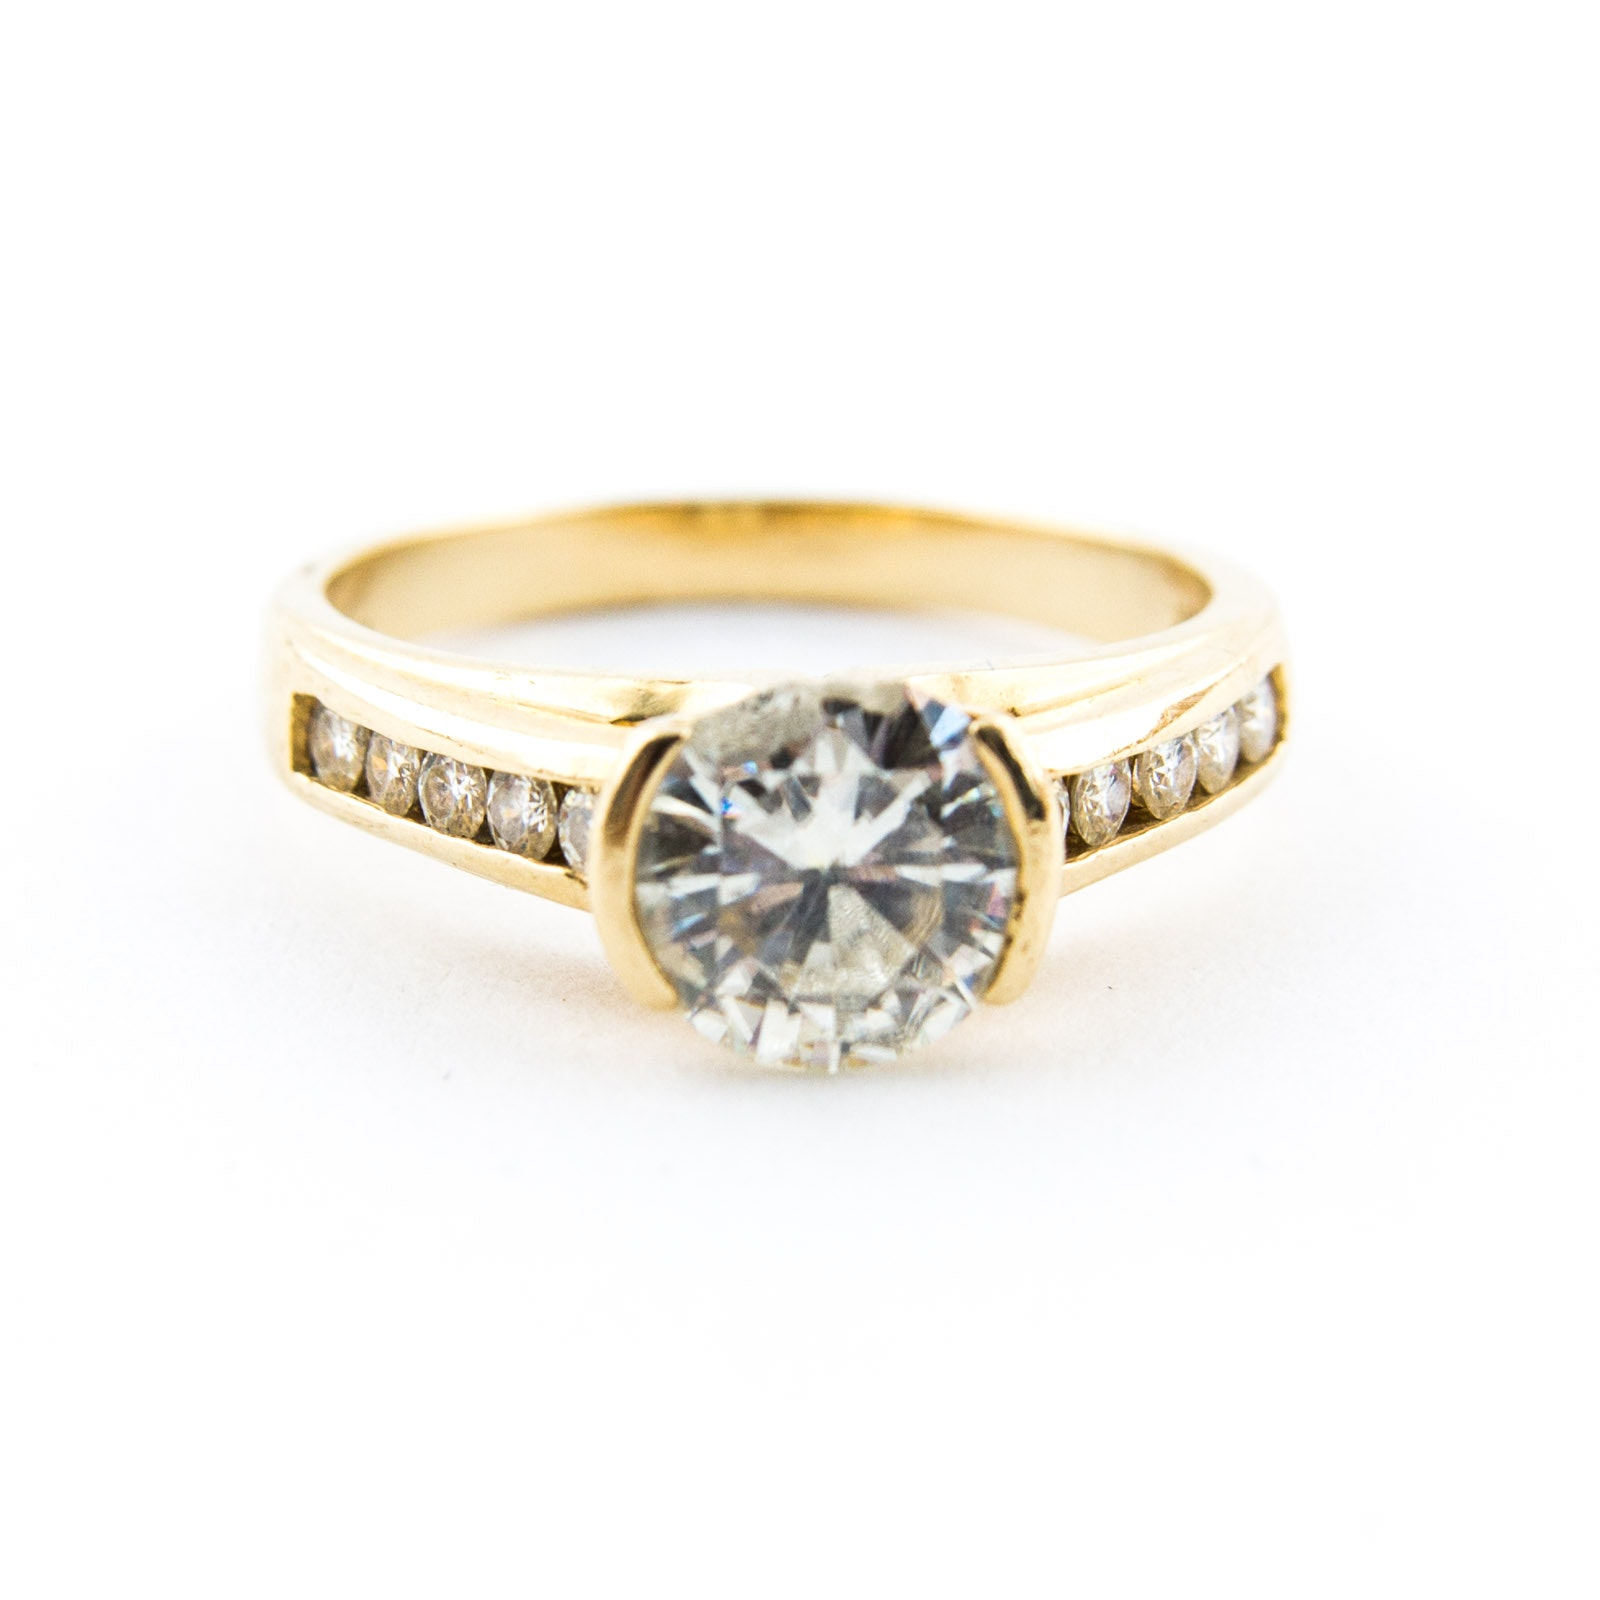 14K Yellow Gold Ring with Moissanite Stones